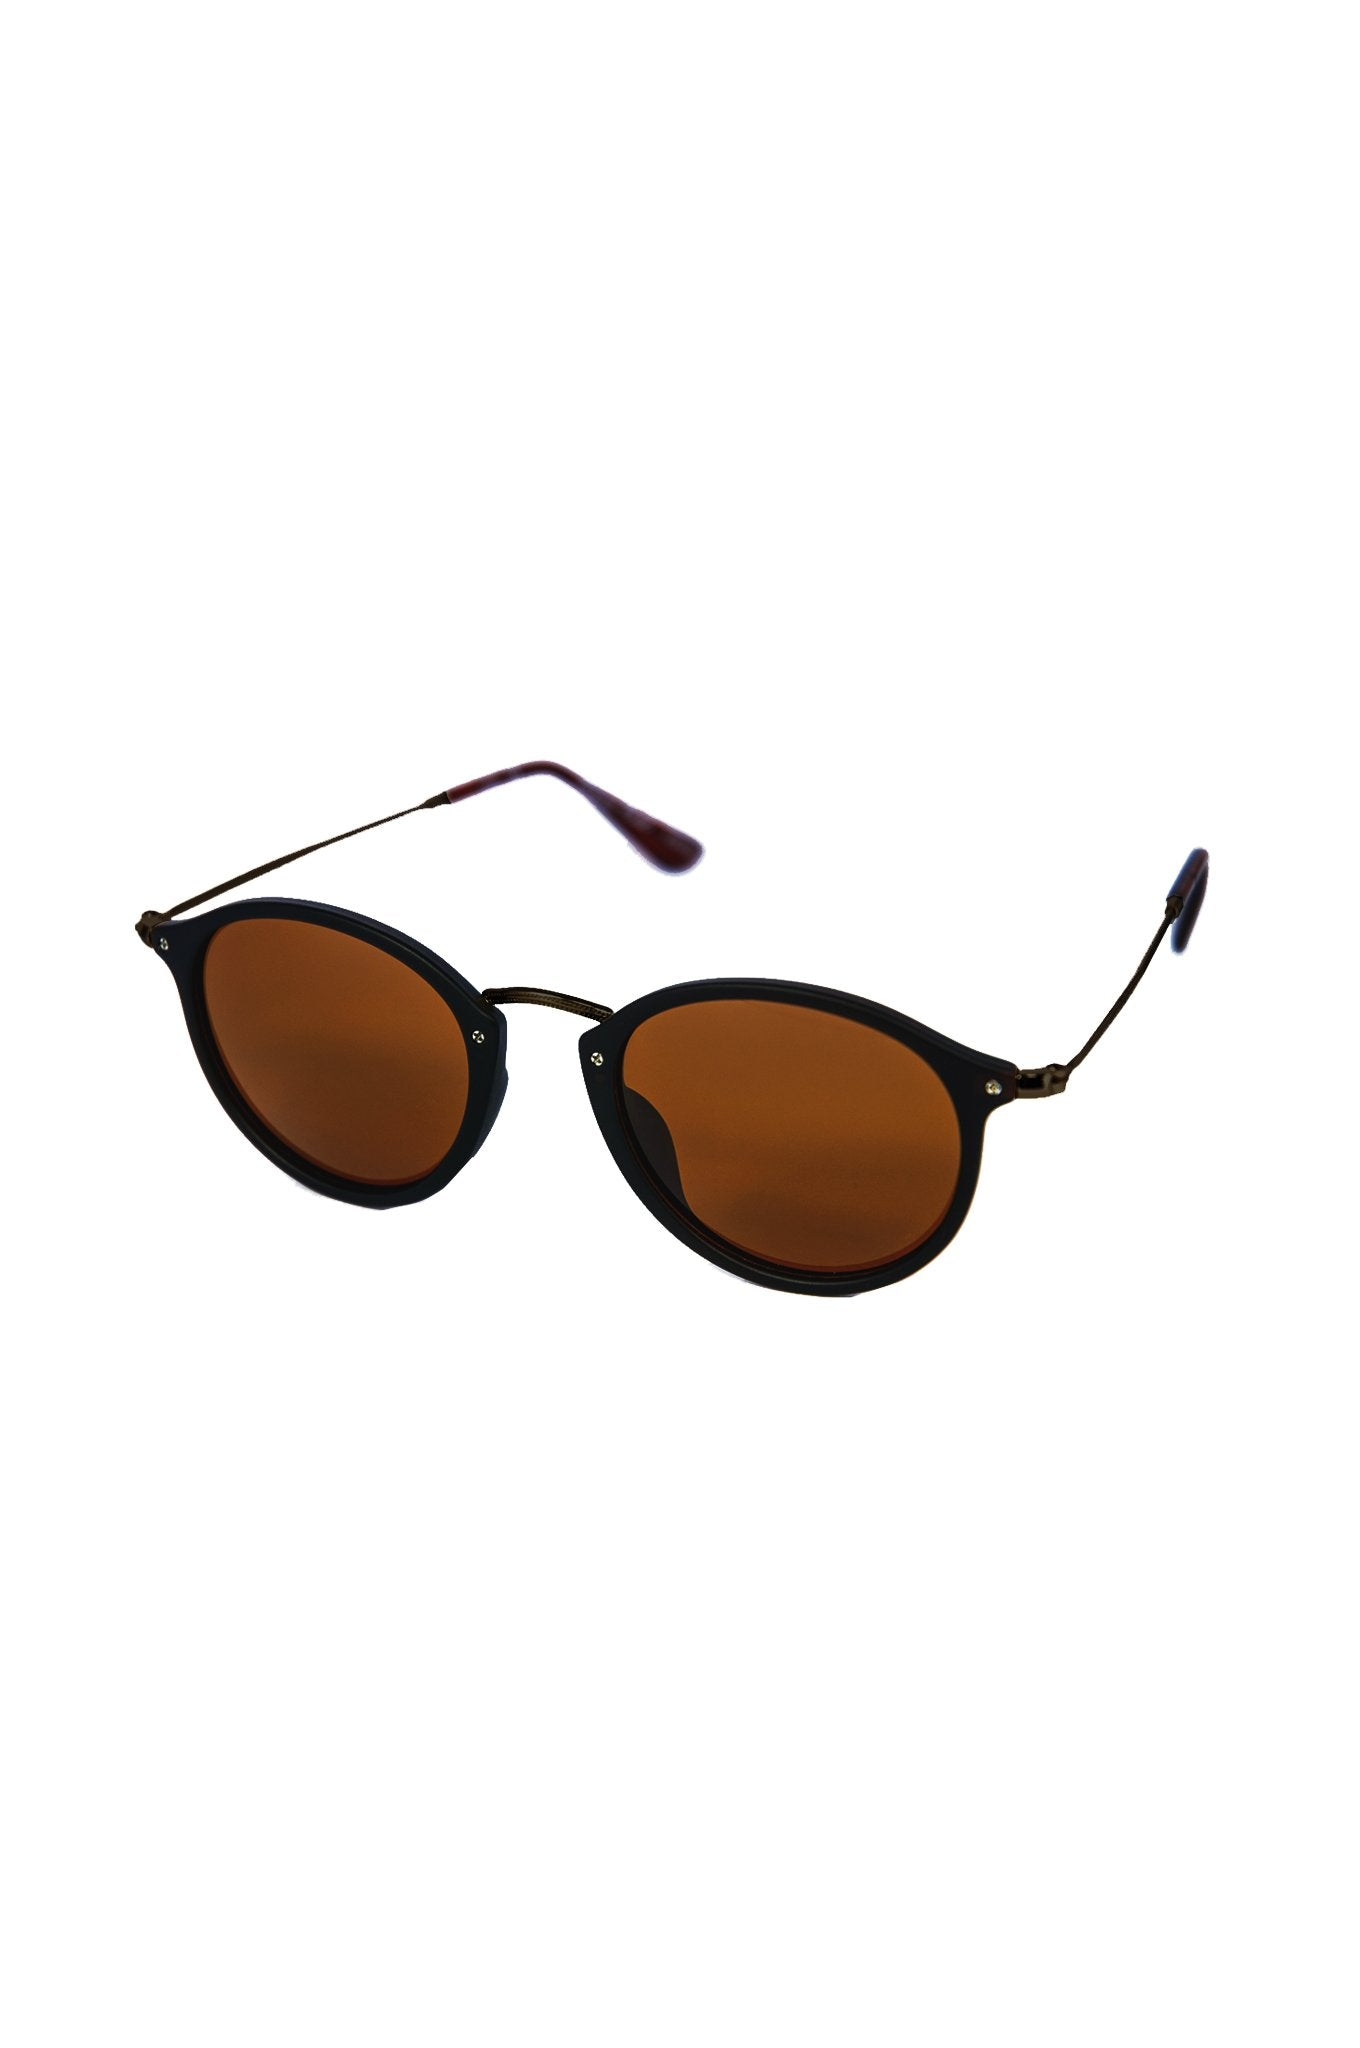 Sunglasses - Milano Brown